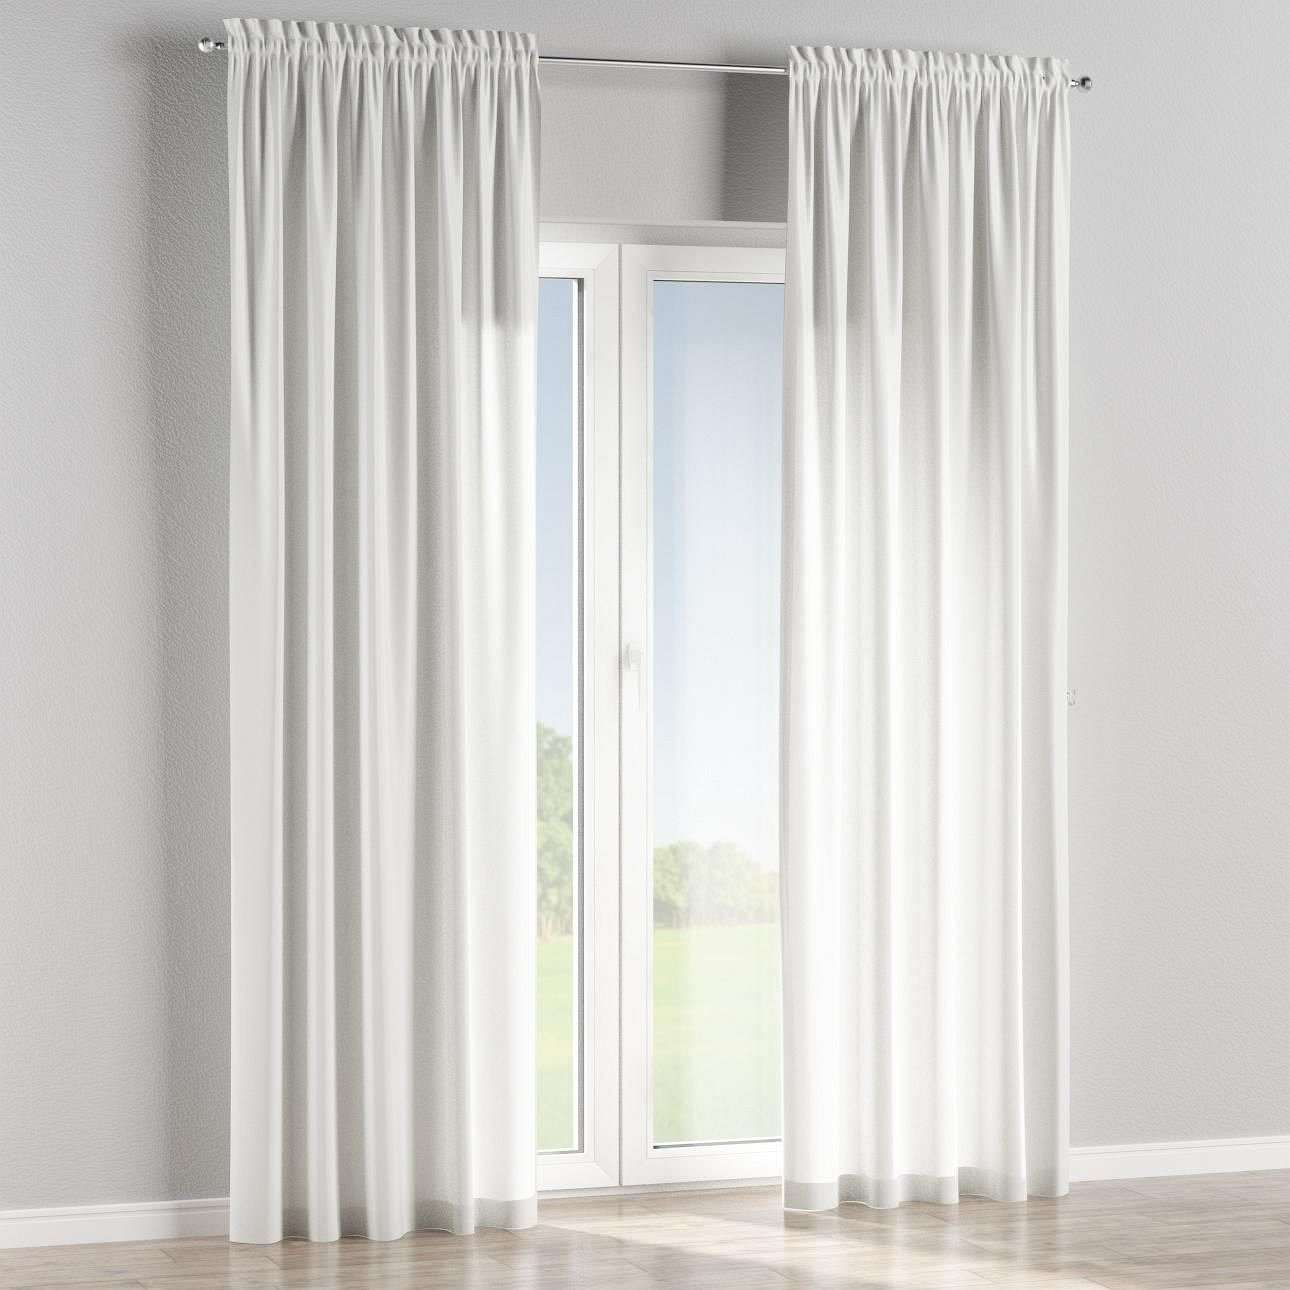 Slot and frill curtains in collection Bristol, fabric: 126-48